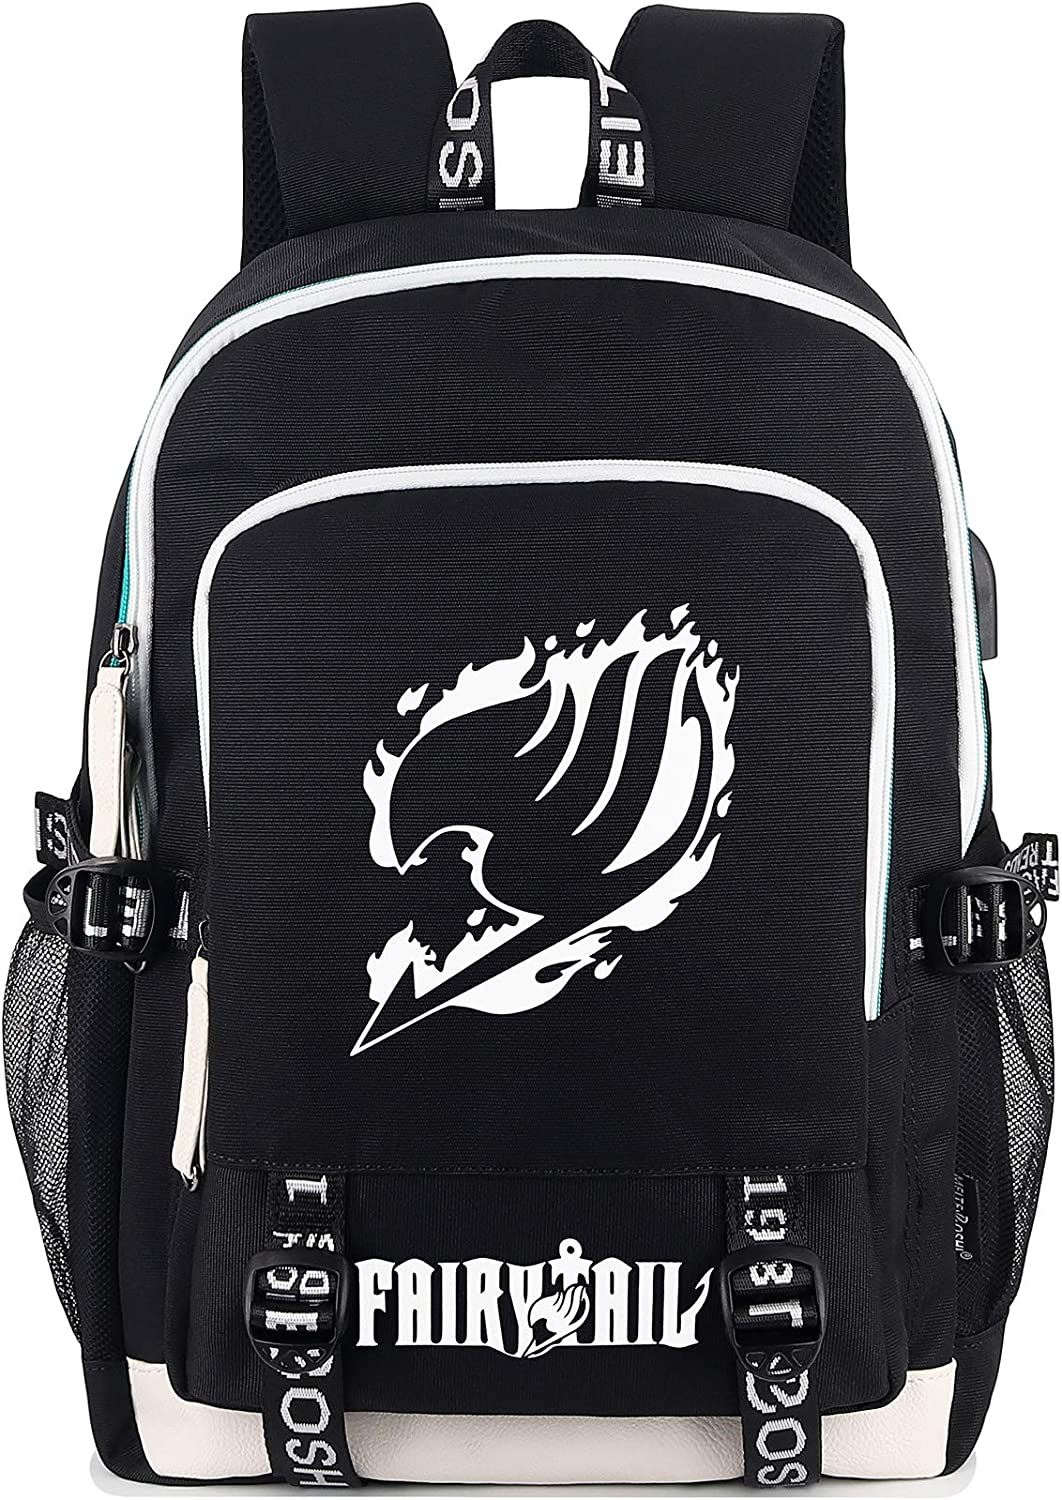 Roffatide Anime Fairy Tail Backpack Luminous Printed College School Bag Laptop Backpack with USB Charging Port & Headphone Port